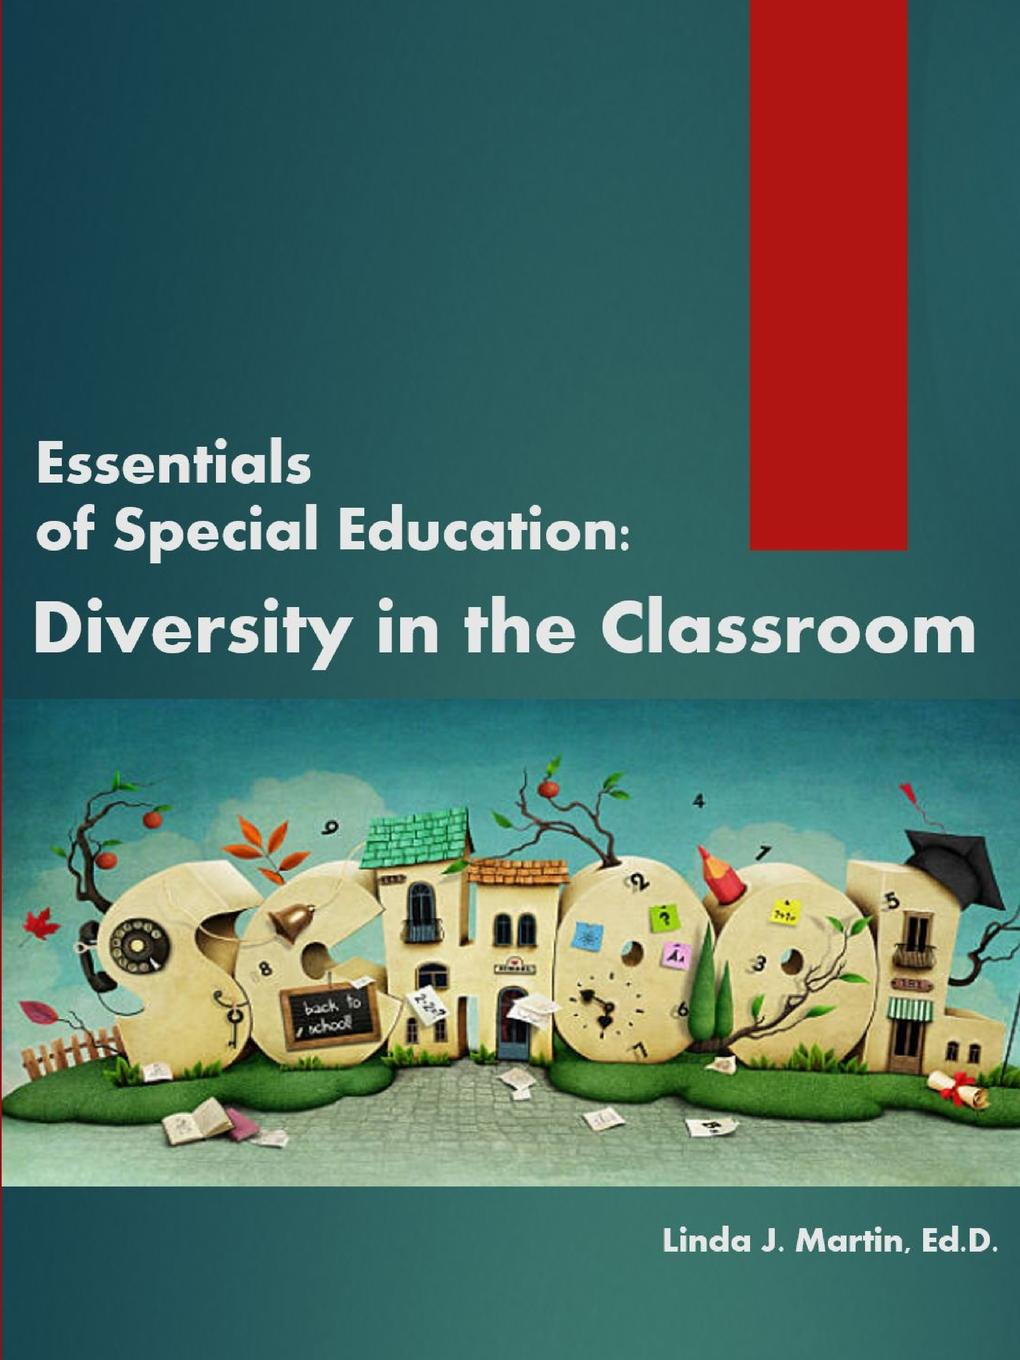 Linda J. Martin Essentials of Special Education. Diversity in the Classroom linda j martin essentials of special education diversity in the classroom